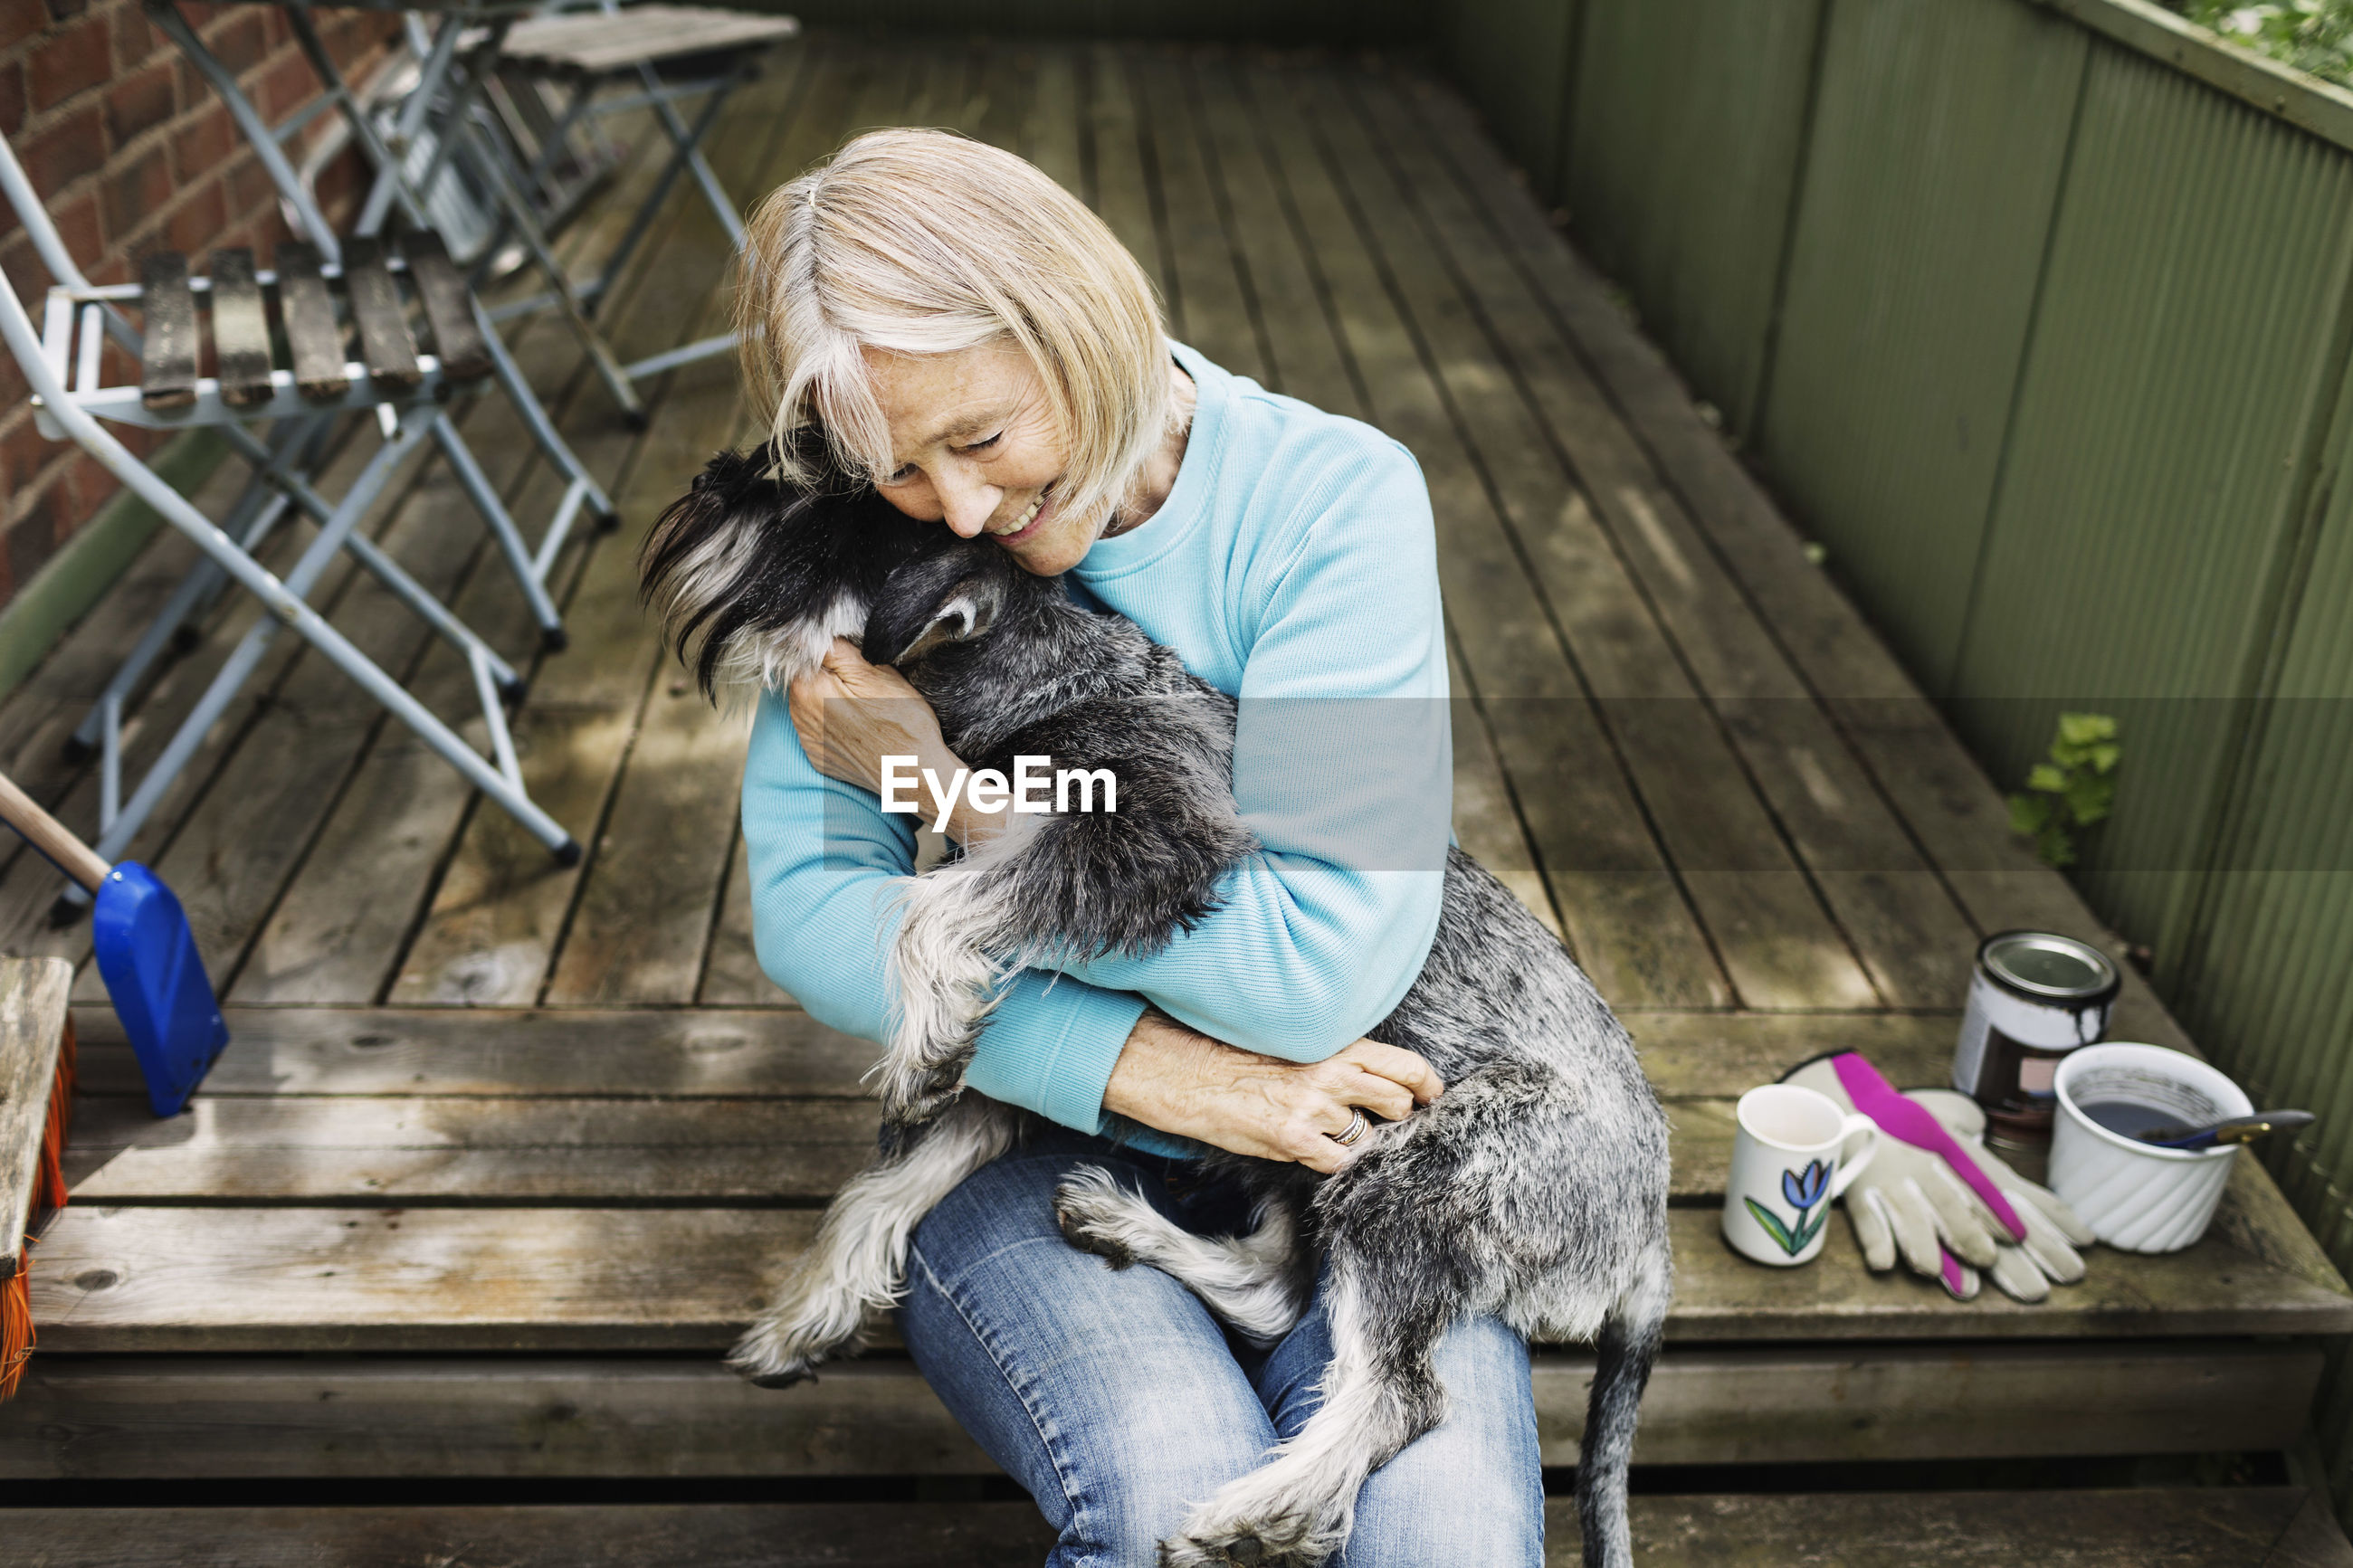 MIDSECTION OF WOMAN HOLDING DOG SITTING OUTDOORS